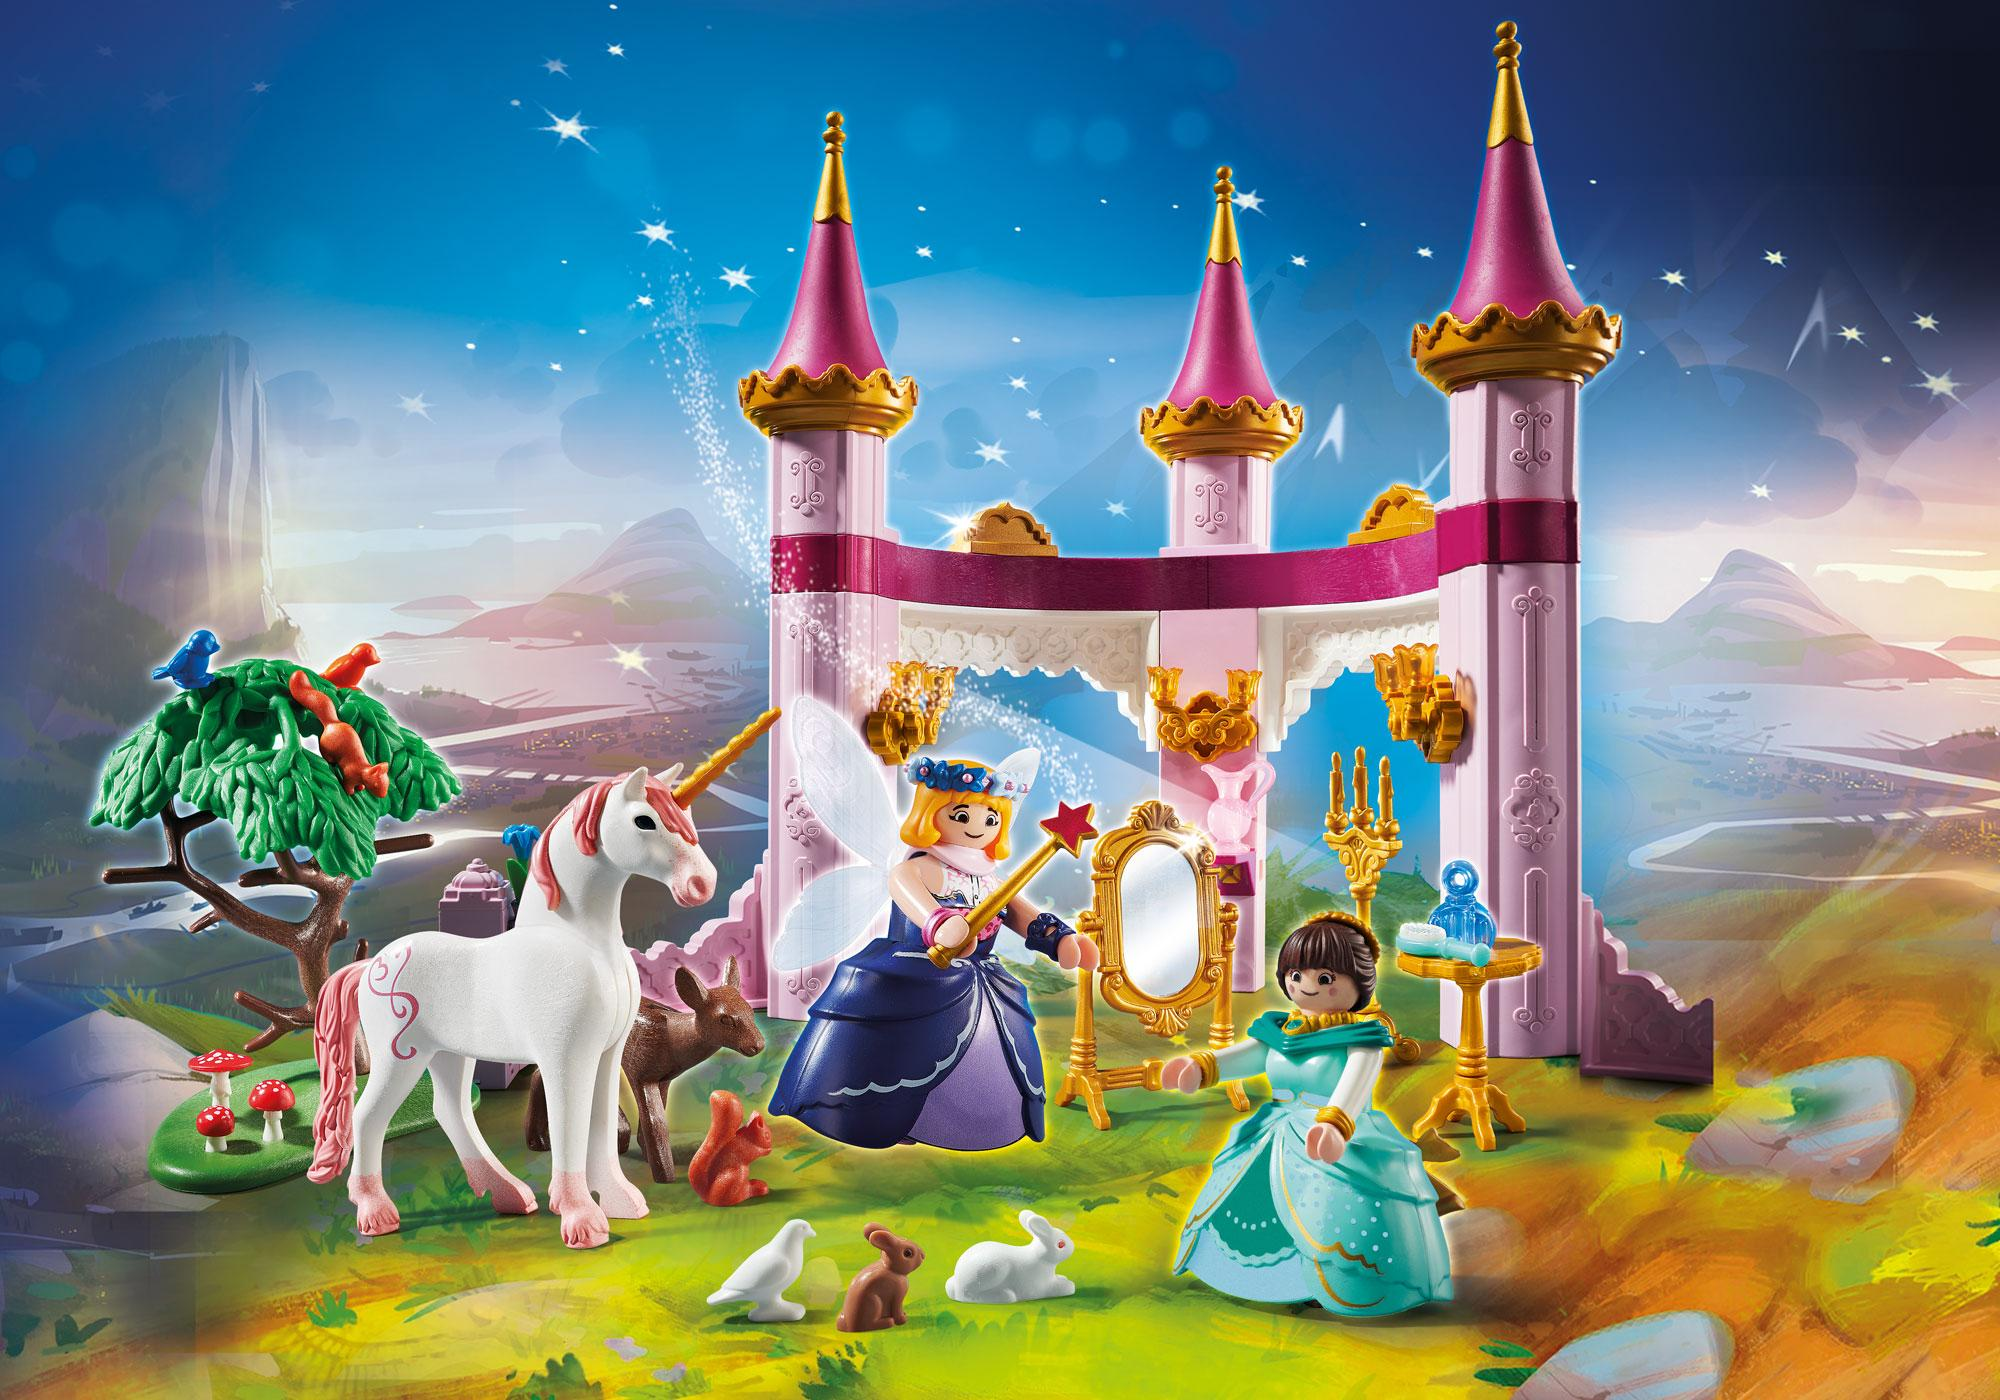 http://media.playmobil.com/i/playmobil/70077_product_detail/PLAYMOBIL:THE MOVIE Marla in the Fairytale Castle